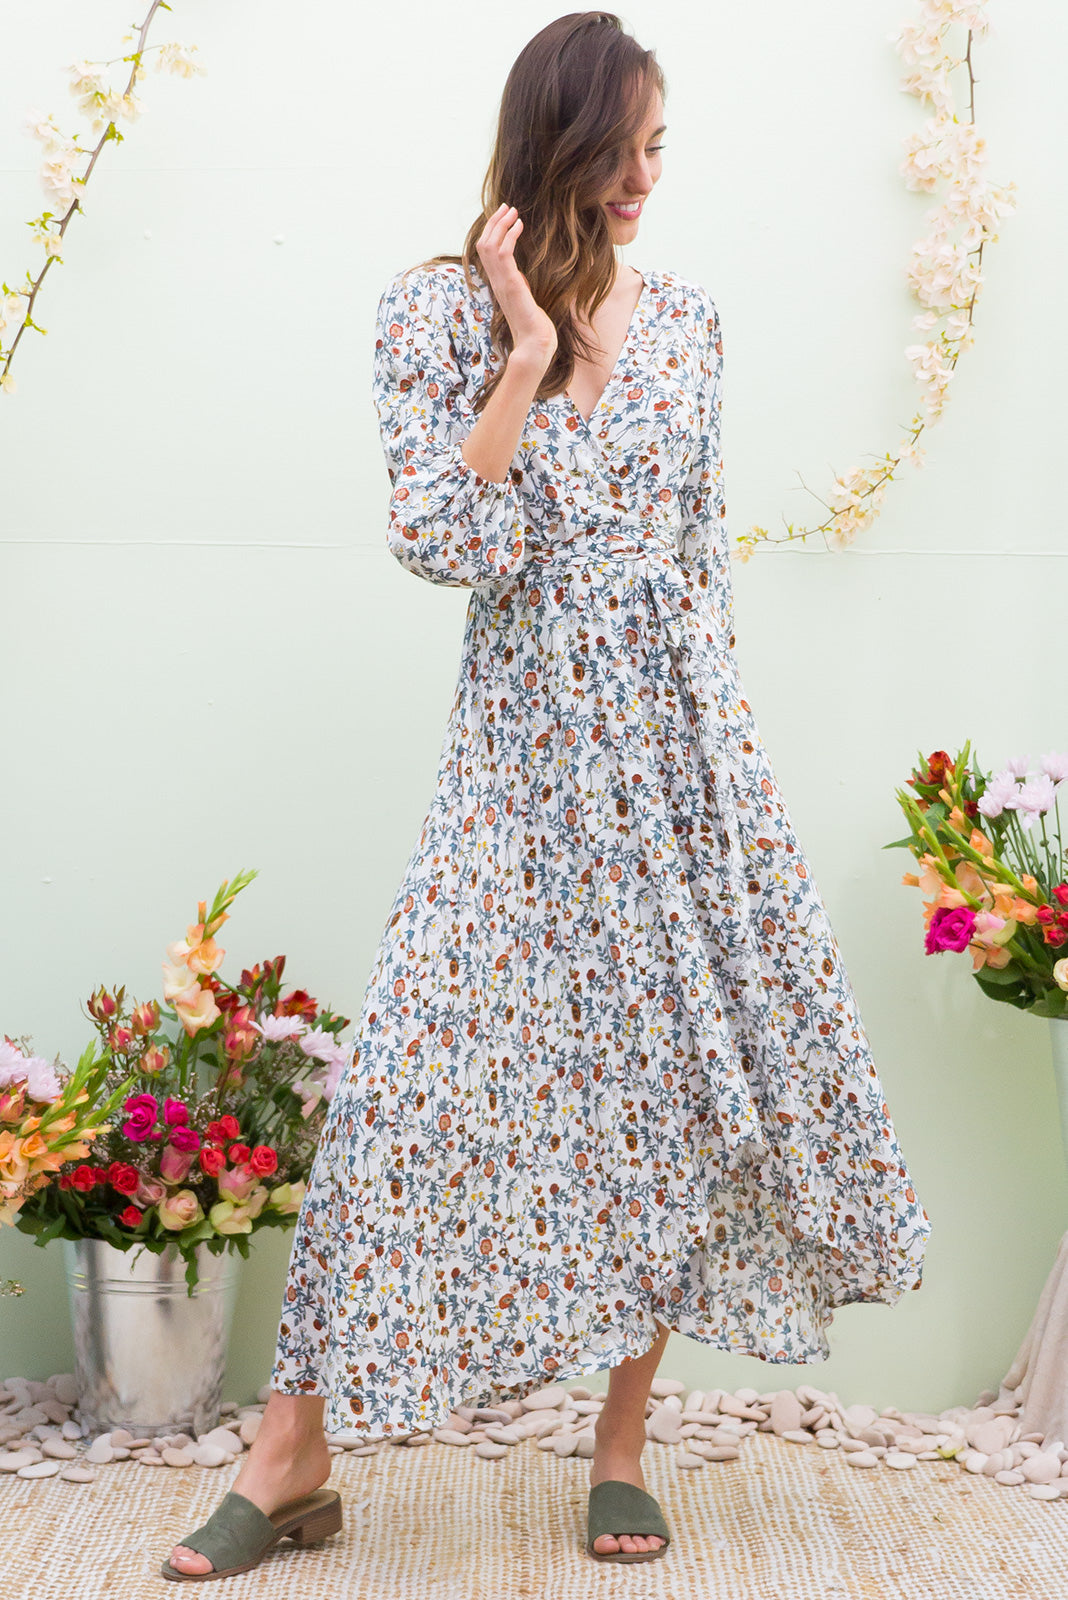 Daydreamer Paper Daisy Maxi Wrap Dress with a full length sleeve in a wrap around style in a delicate wild flower print on classic white on a soft woven rayon fabric